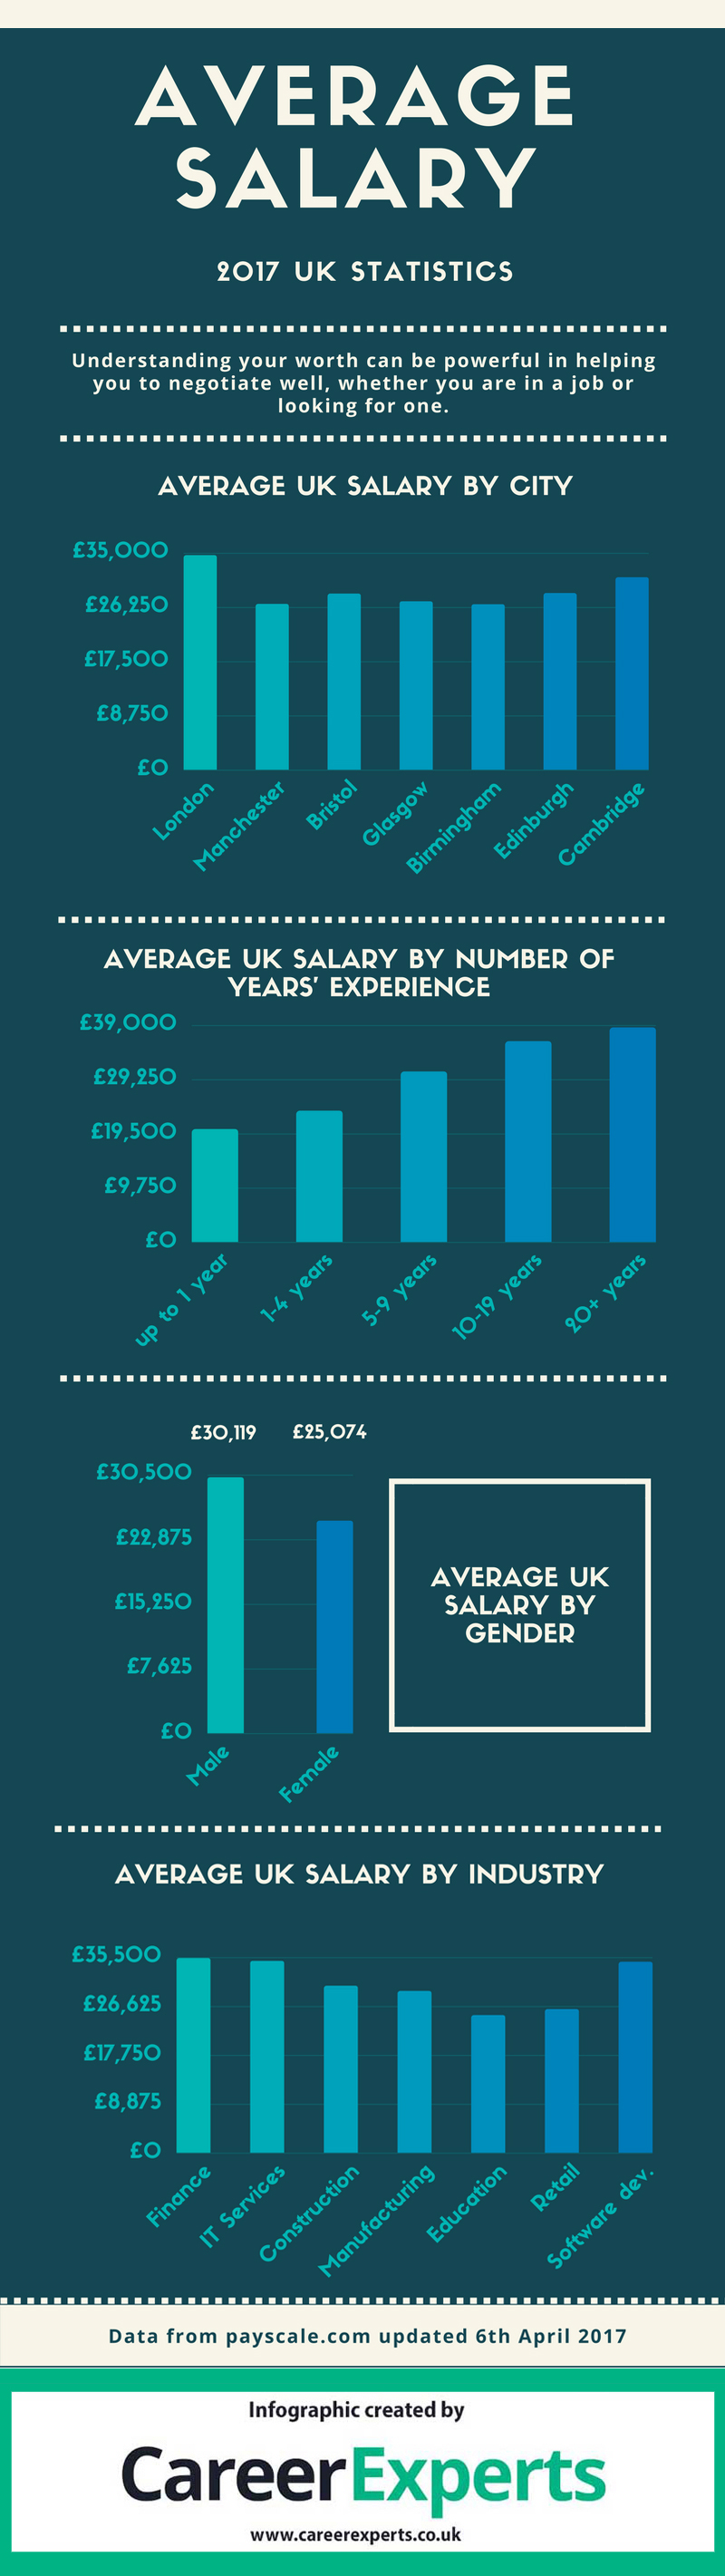 UK average salary infographic